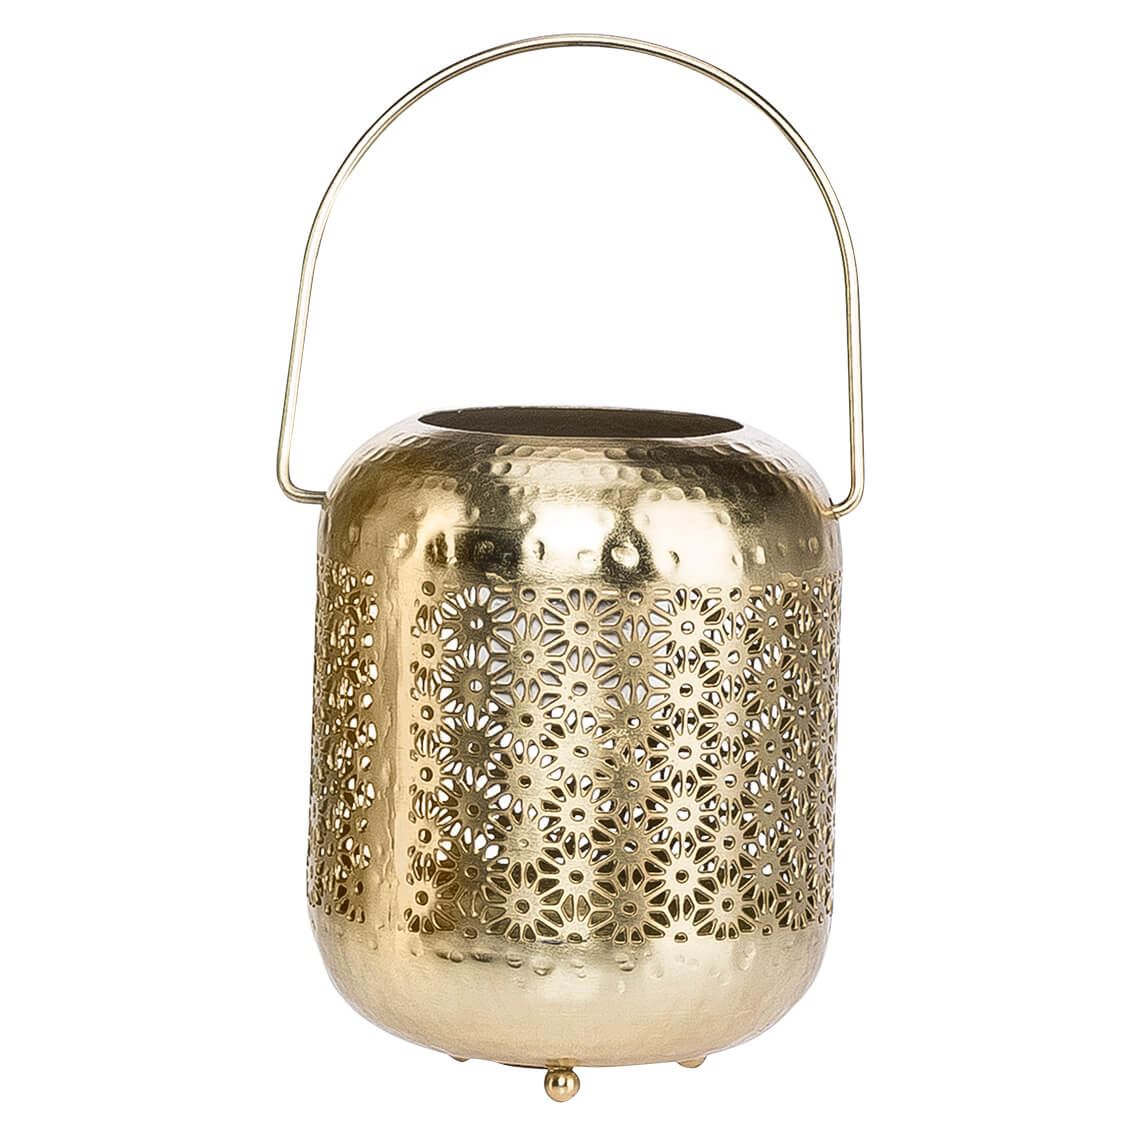 Hira Candle Holder, Colour Size W 13cm x D 13cm x H 17cm in Gold Mild Steel Freedom by Freedom, a Plants for sale on Style Sourcebook